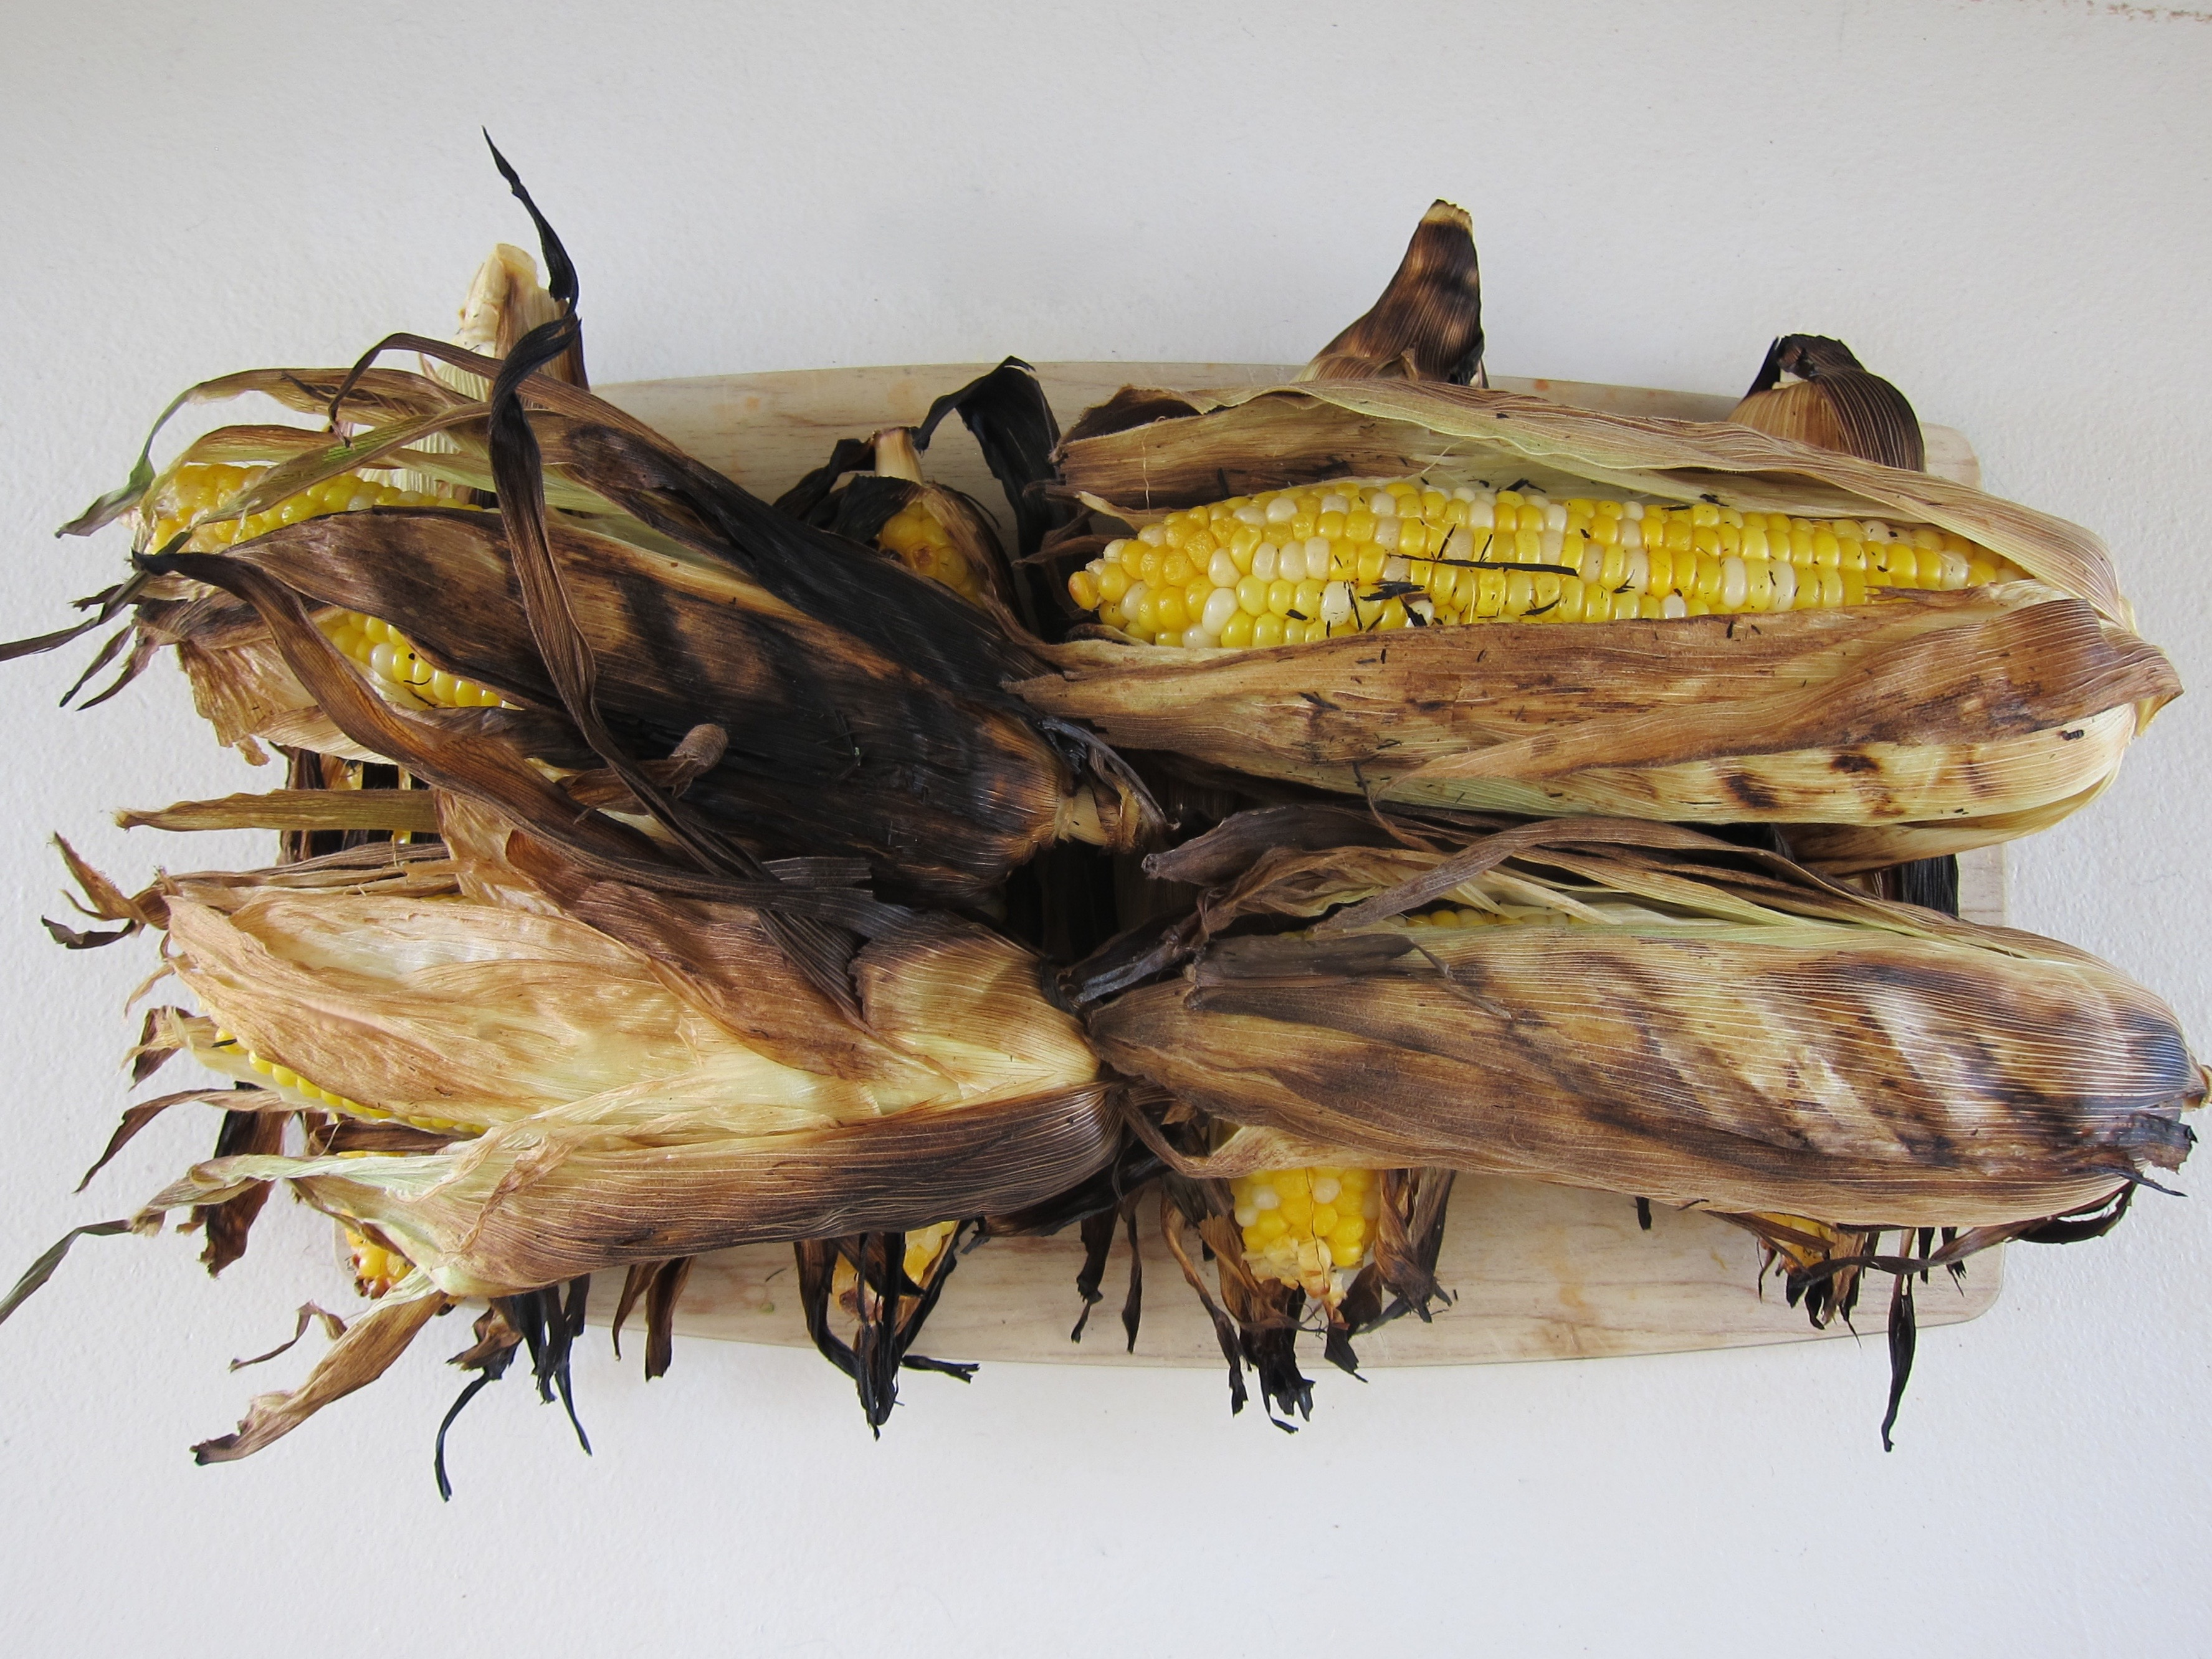 Grilled corn on the cob is a special treat, reserved for seasonal summer eating.